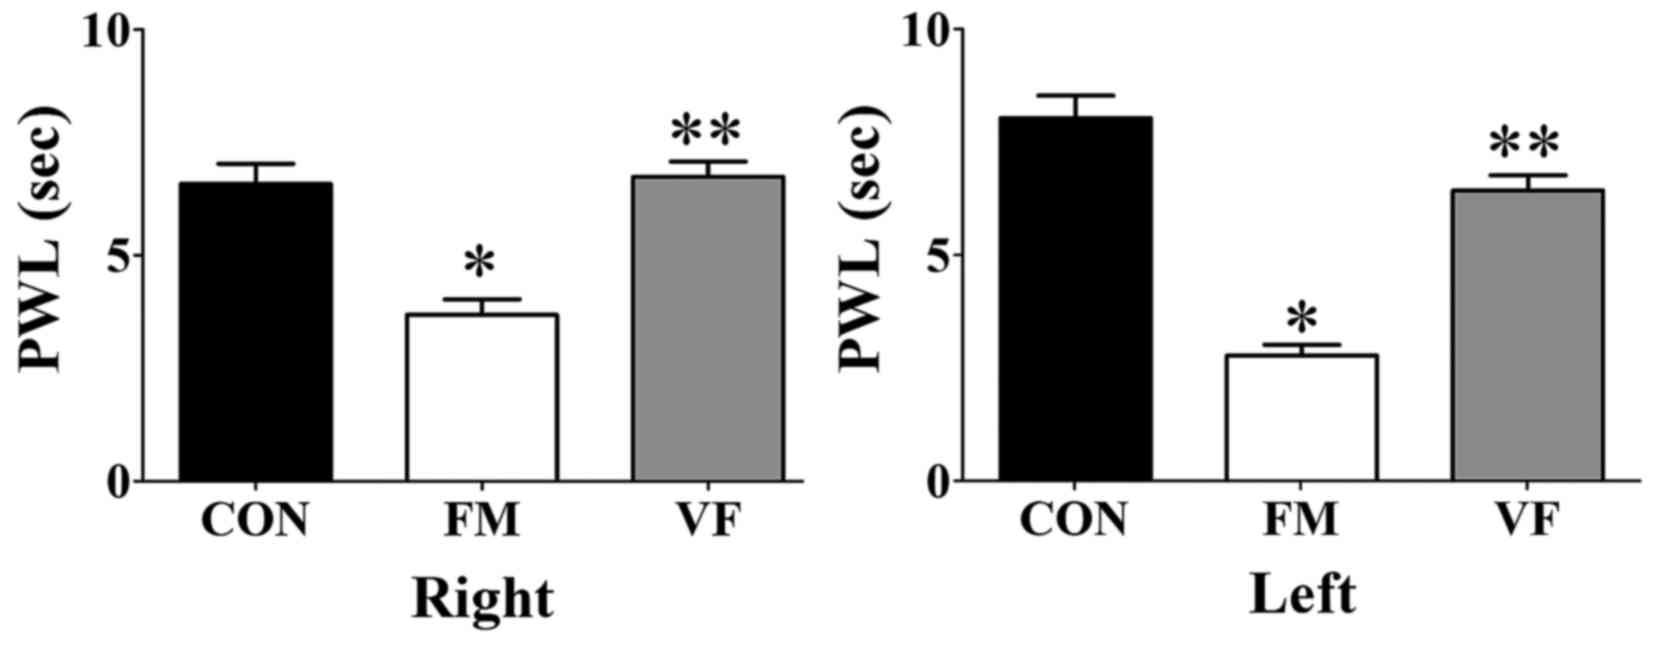 hight resolution of figure 2 differences in reaction time in the plantar test caused by vf administration effects of vf on nociceptive responses in the plantar test